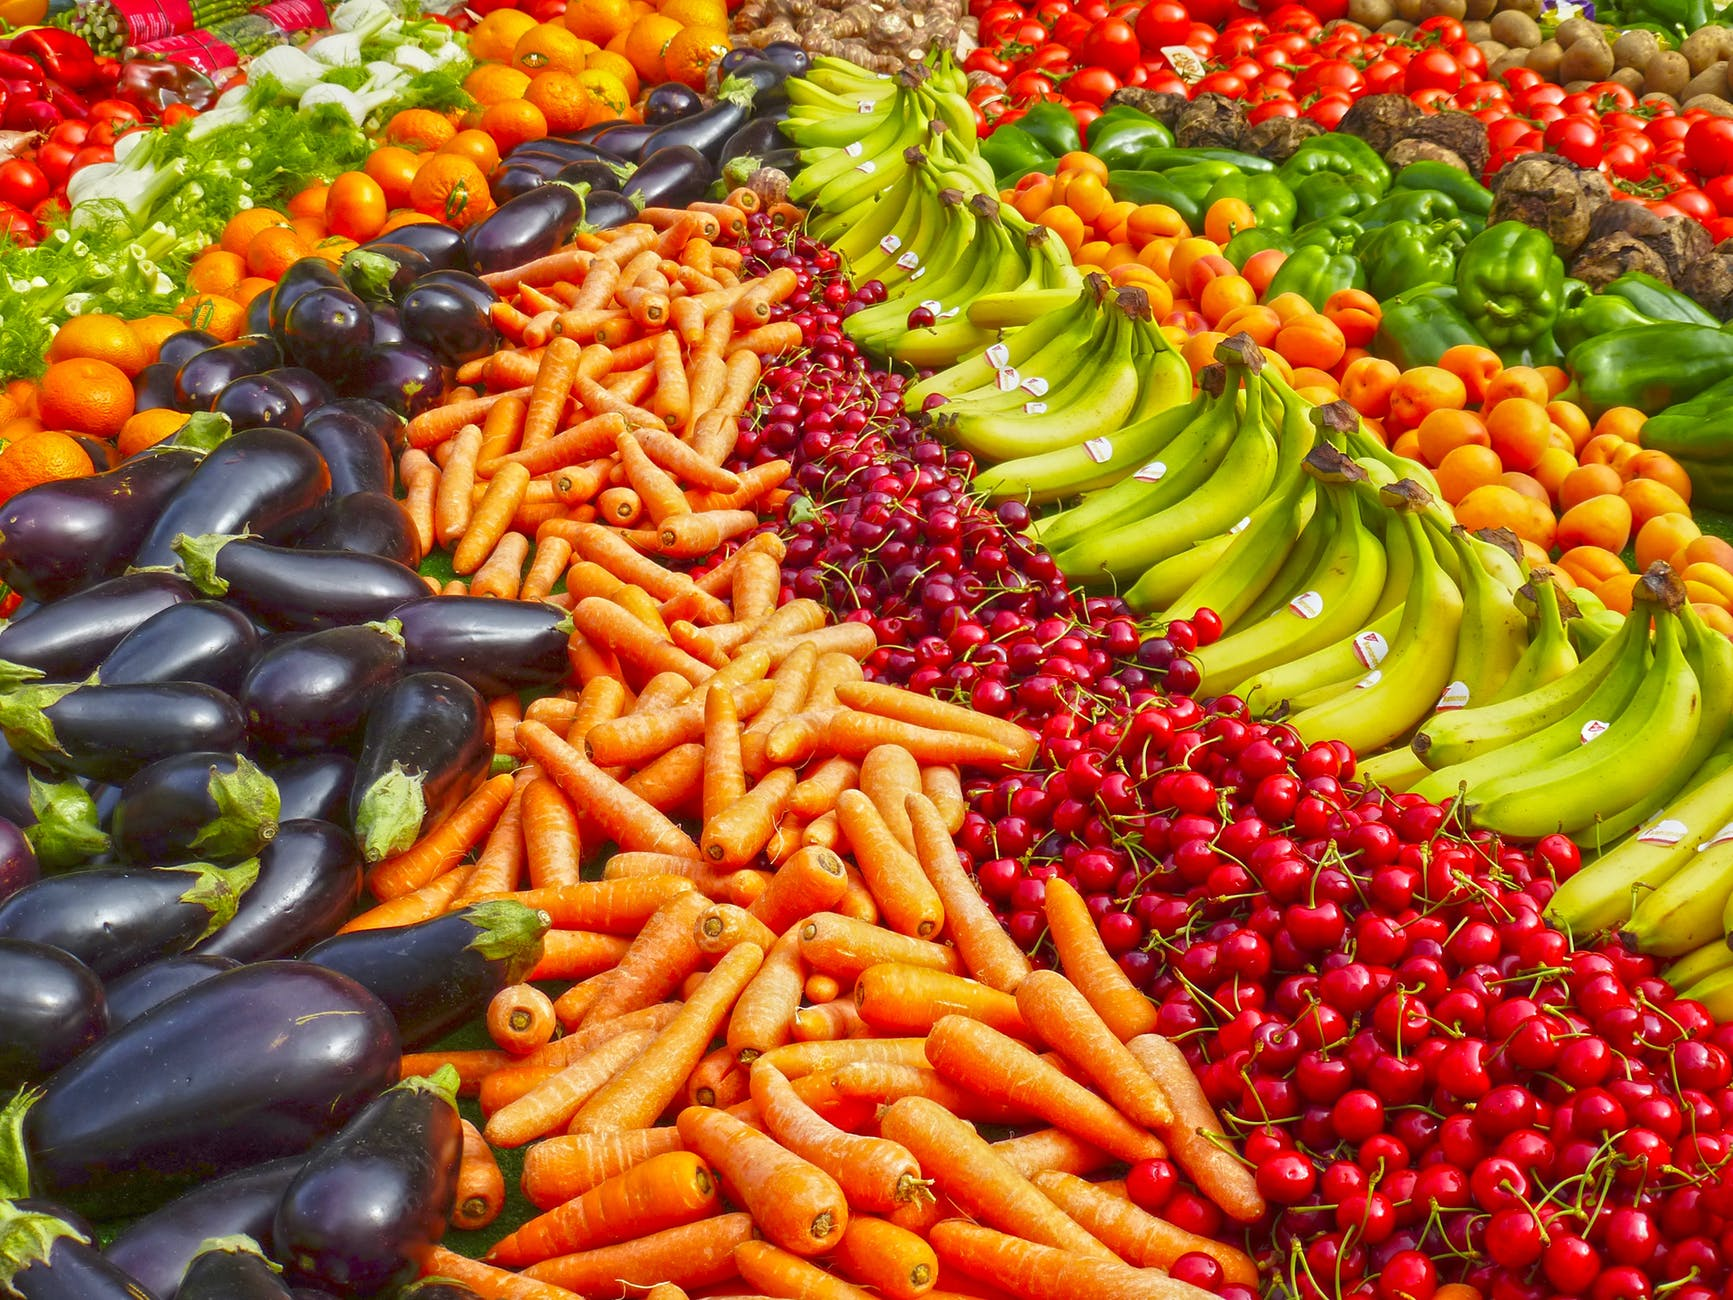 A pile of fruit and vegetables